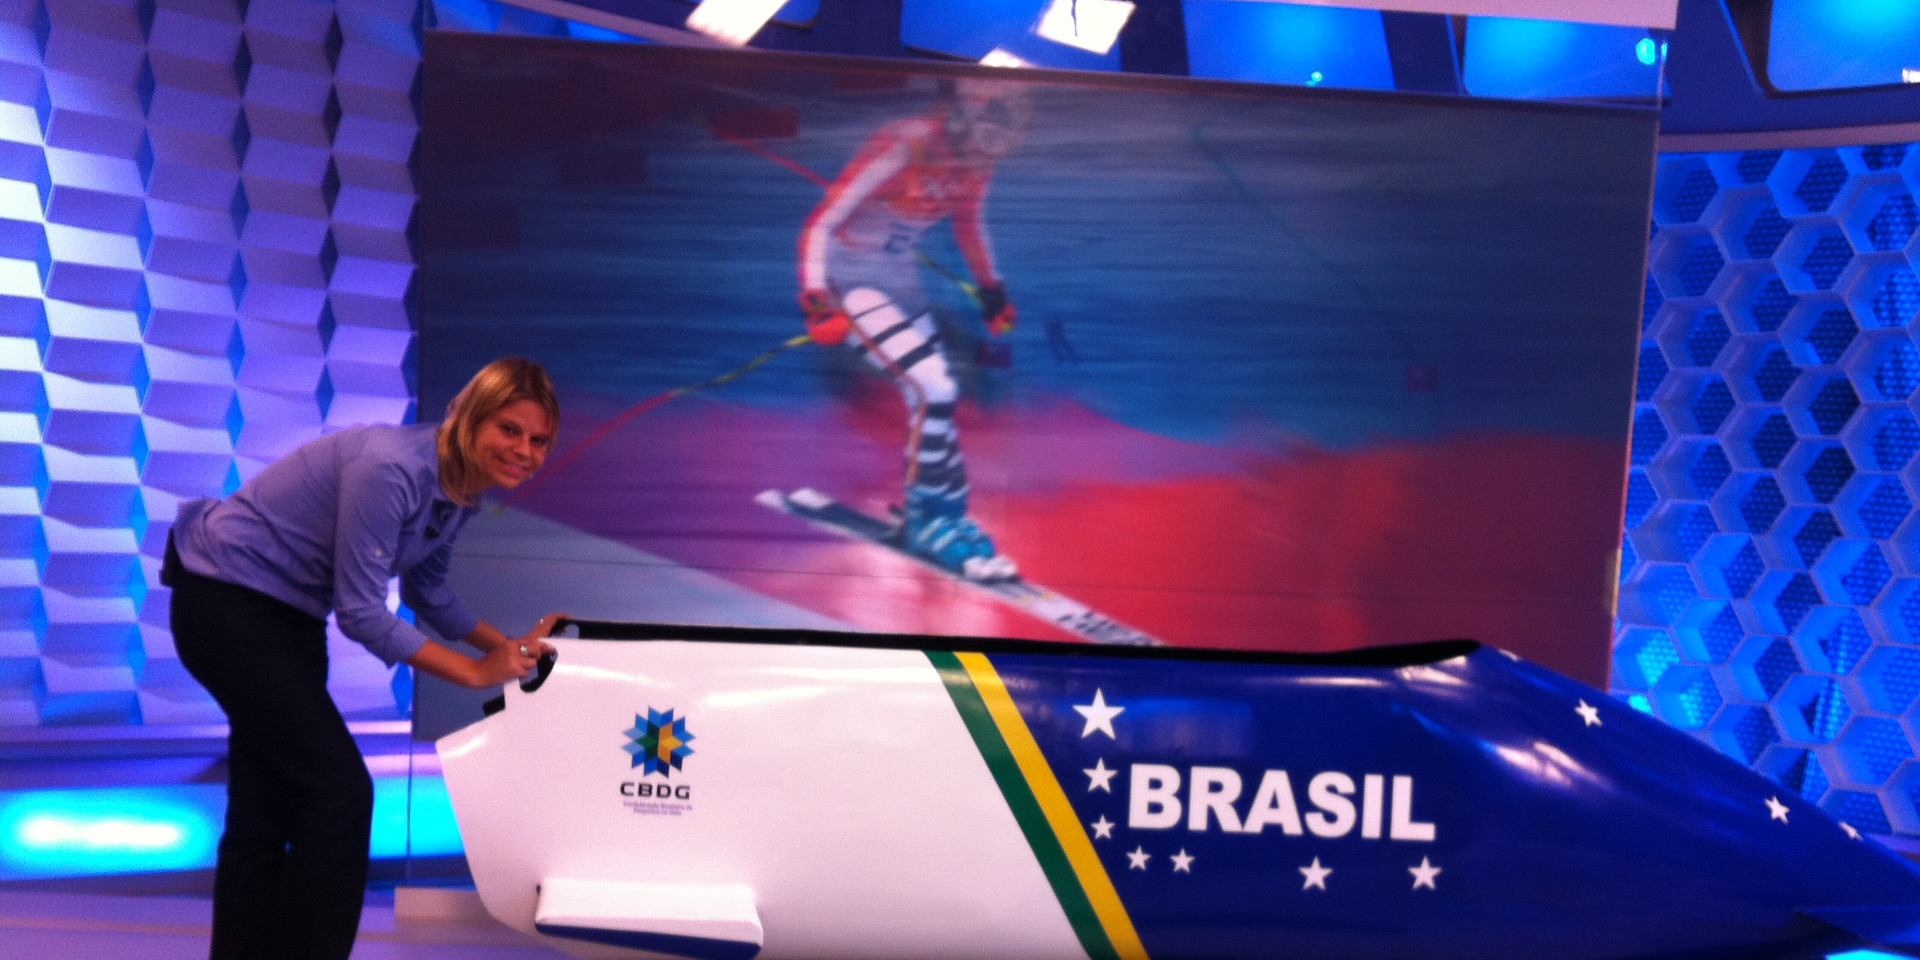 Commentating the Sochi 2014 Olympic Winter Games for TV GLOBO